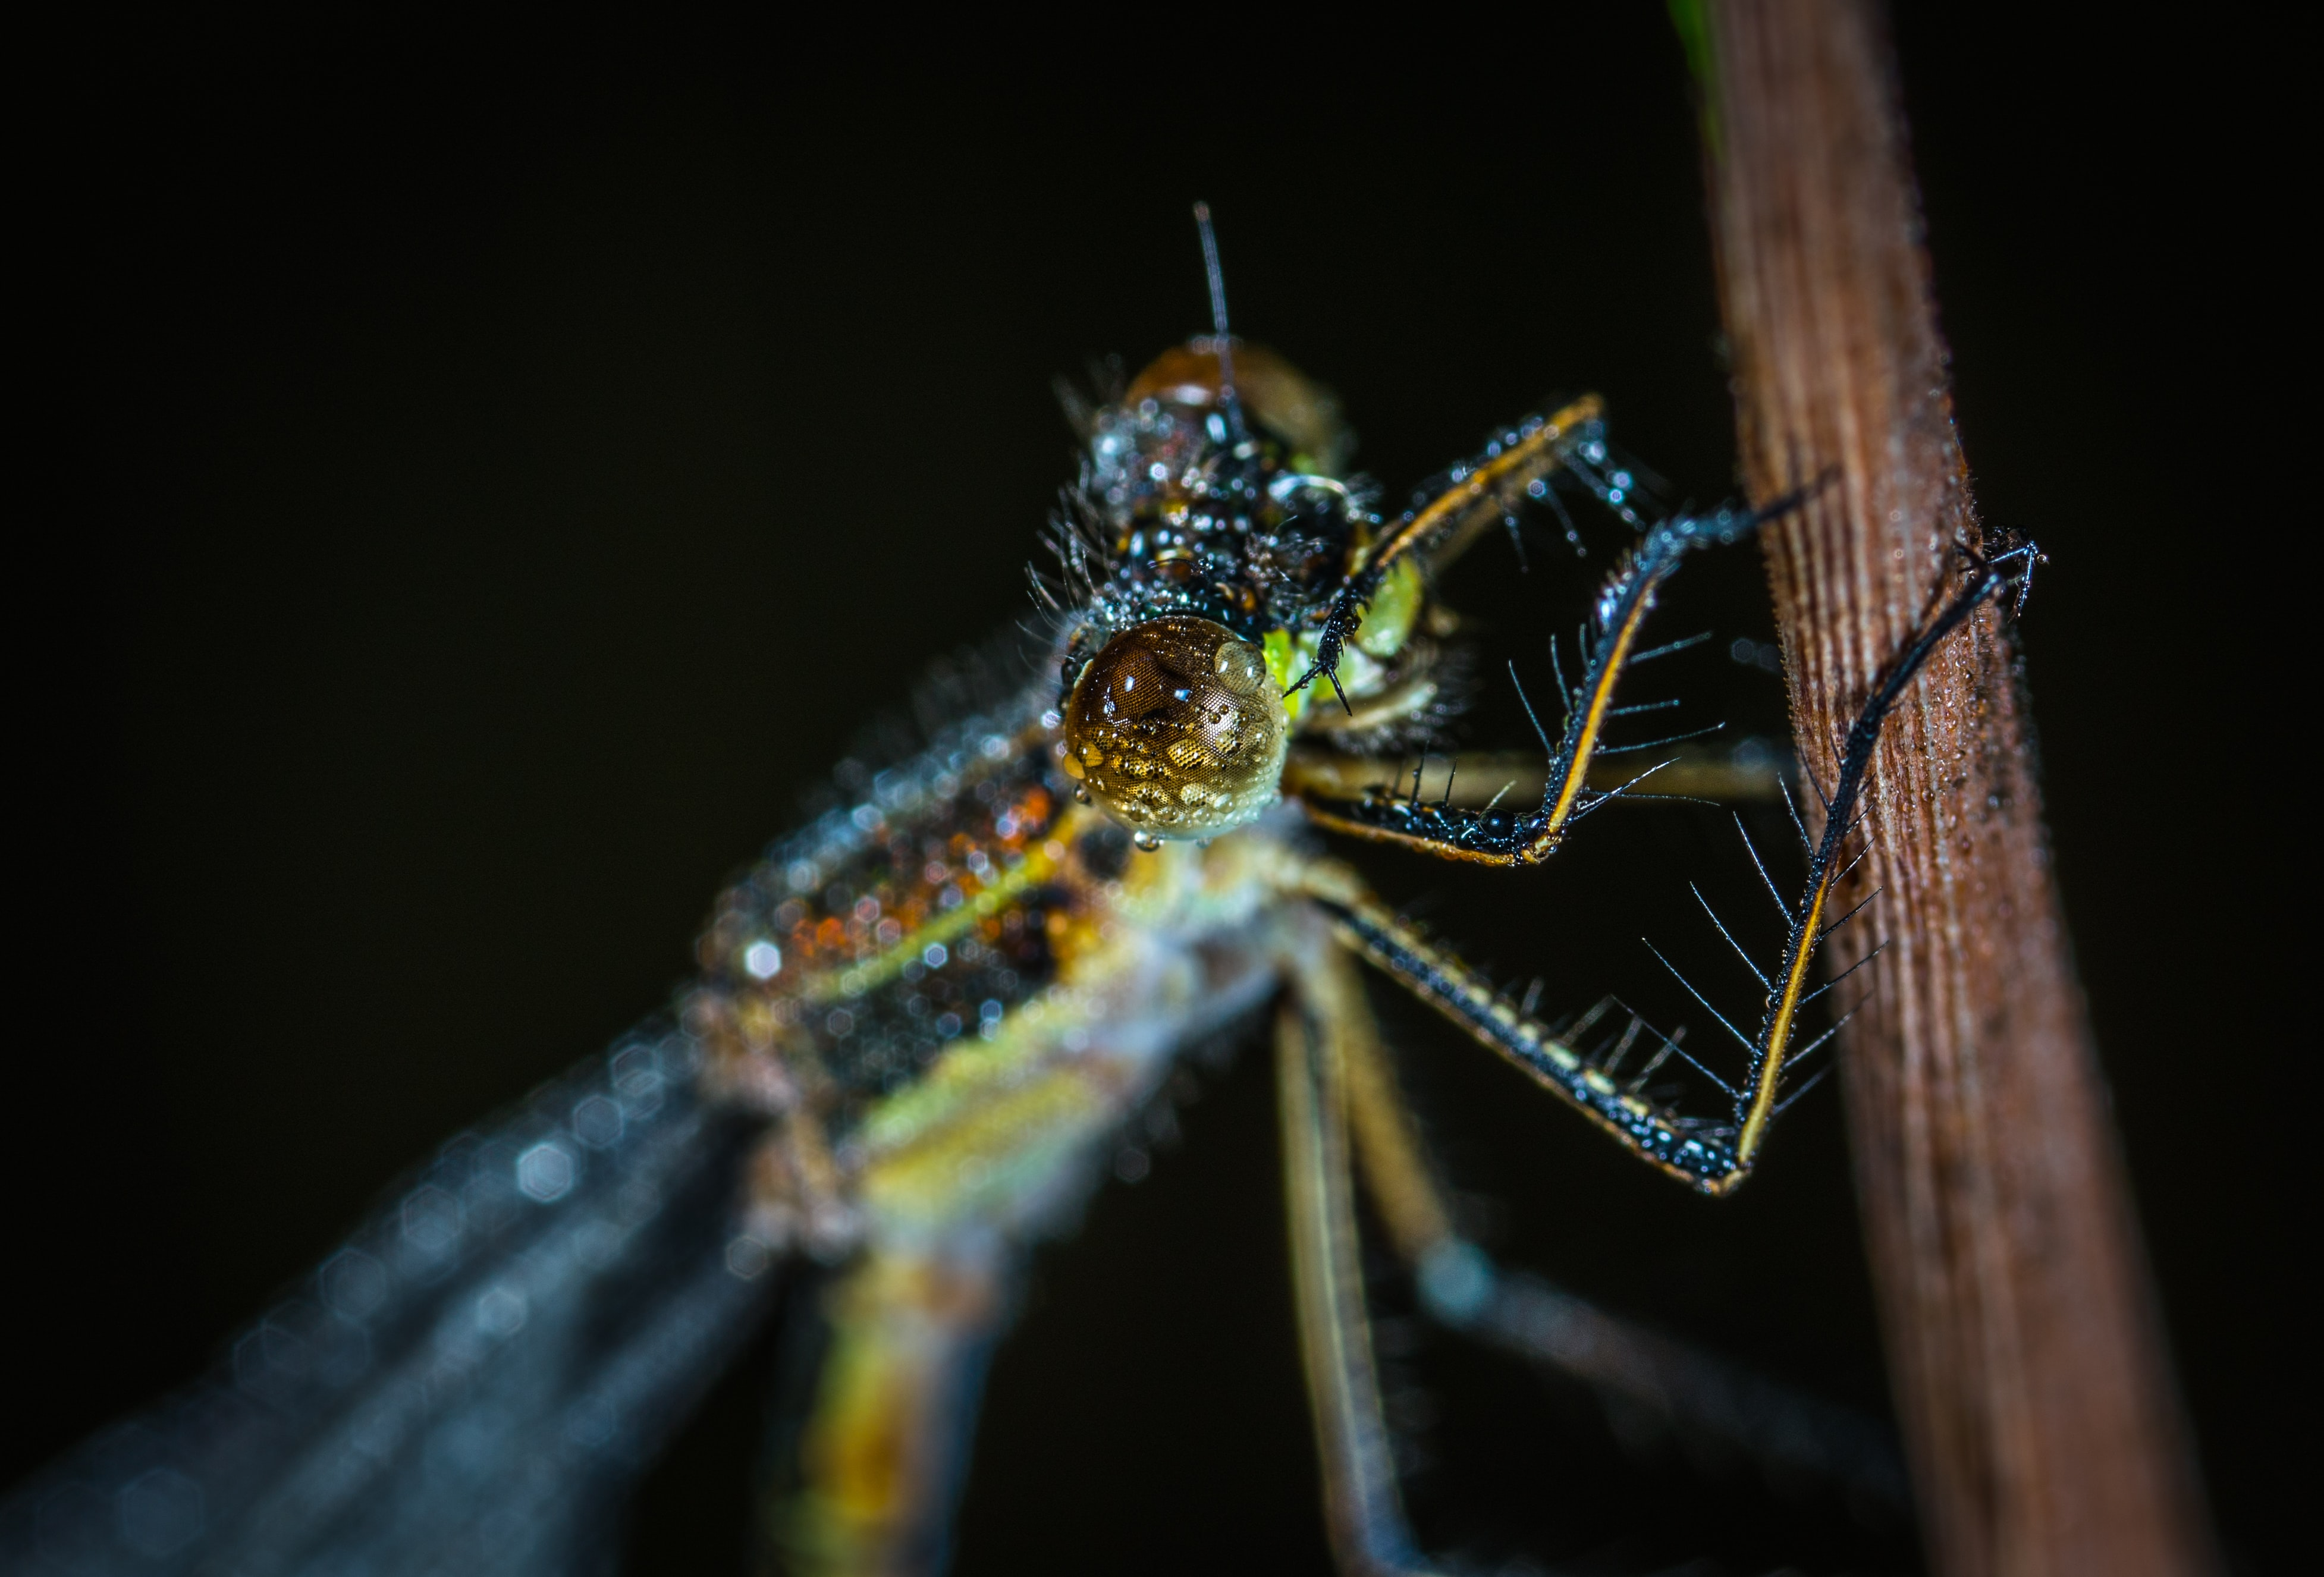 green and grey winged insect in macro photo